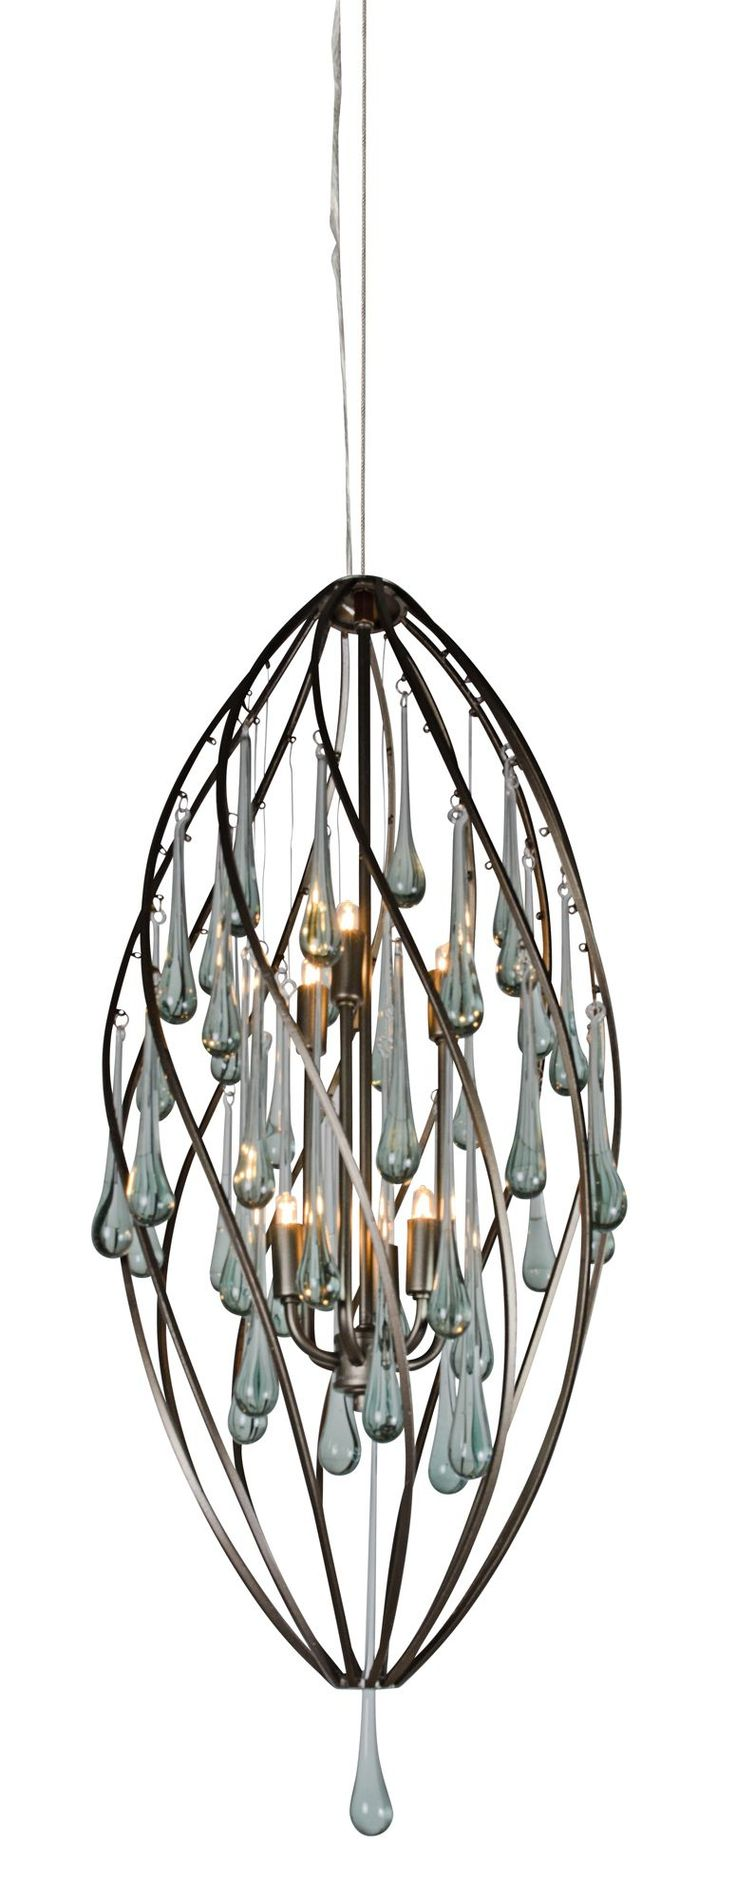 leaf company chandelier currey glass recycled tiered and silver products